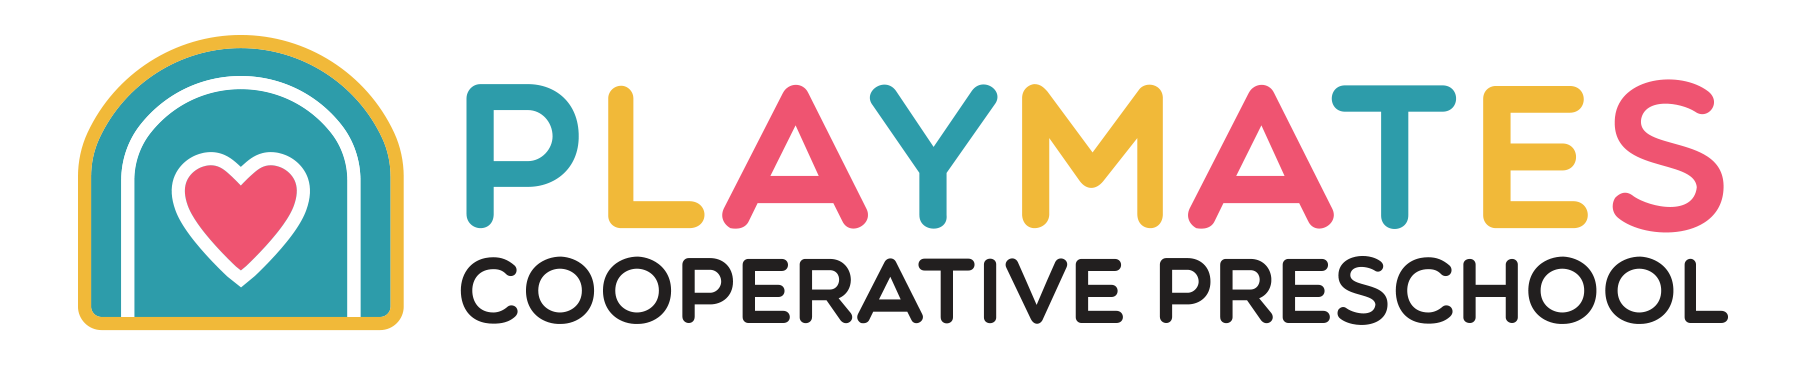 Playmates Cooperative Preschool